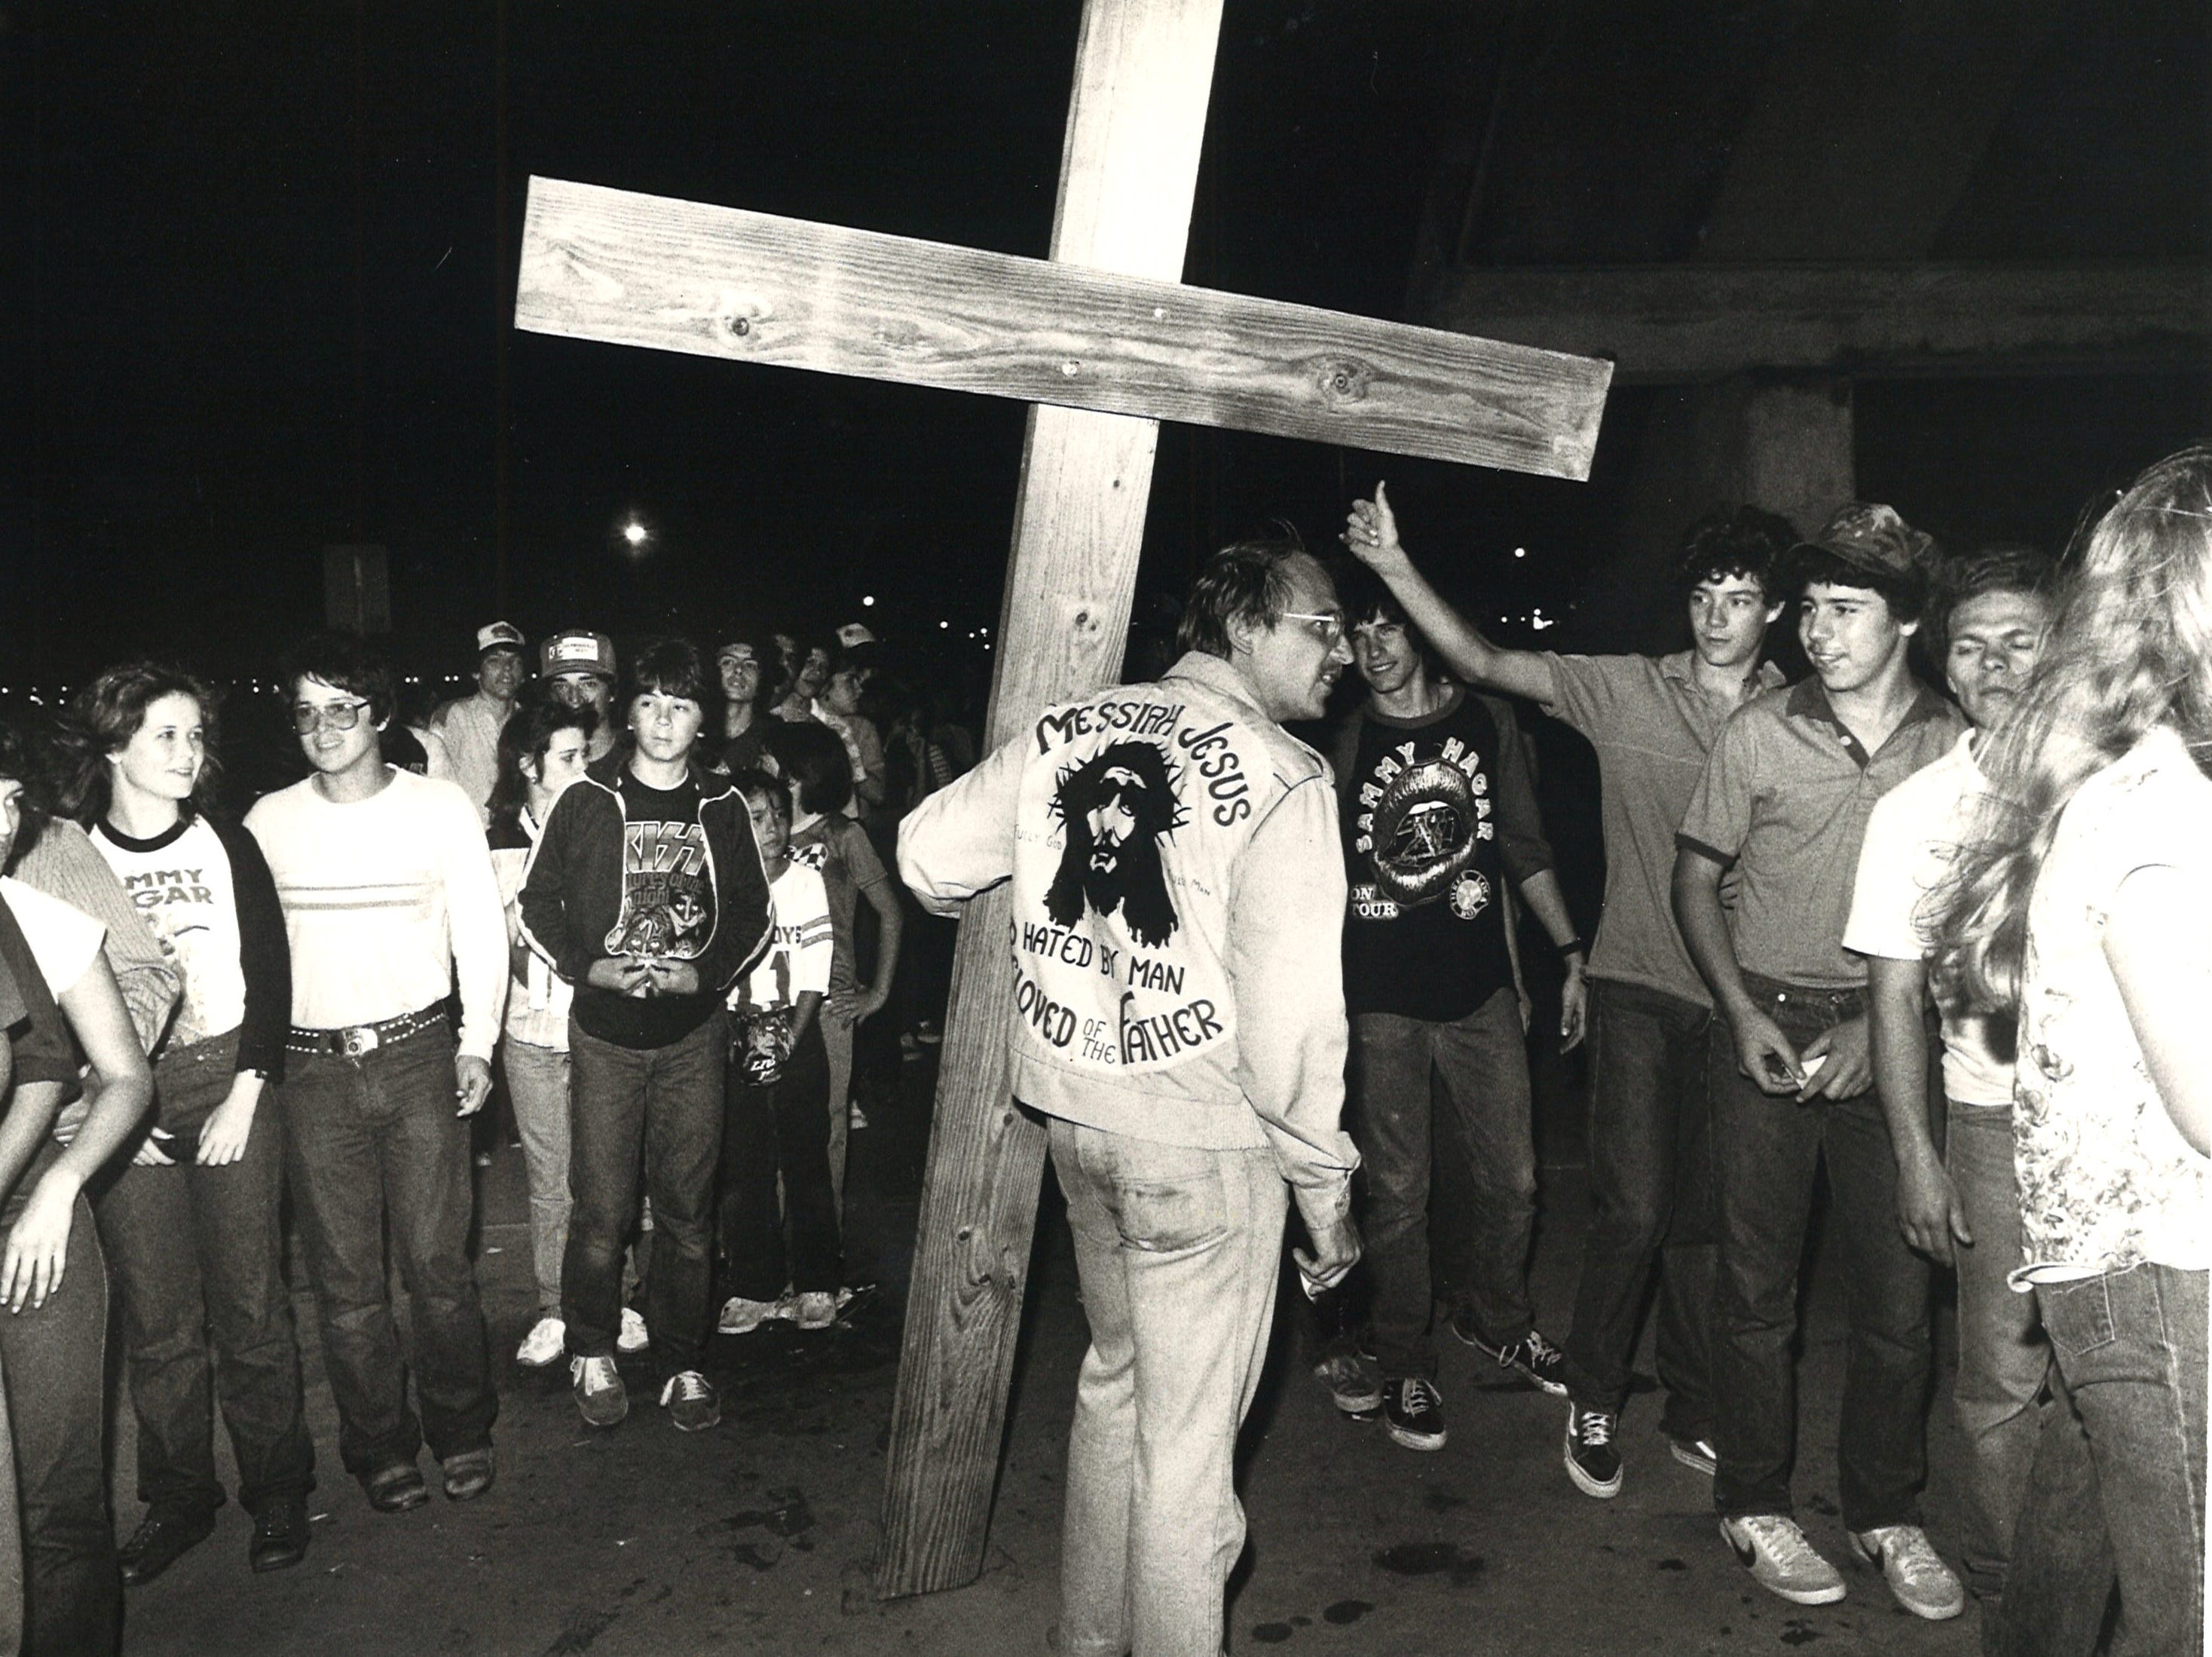 Michael Woroniecki (with cross), handed out religious tracts and preached to concergoers to avoid the Kiss concert at Corpus Christi's Memorial Coliseum on March 14, 1983.